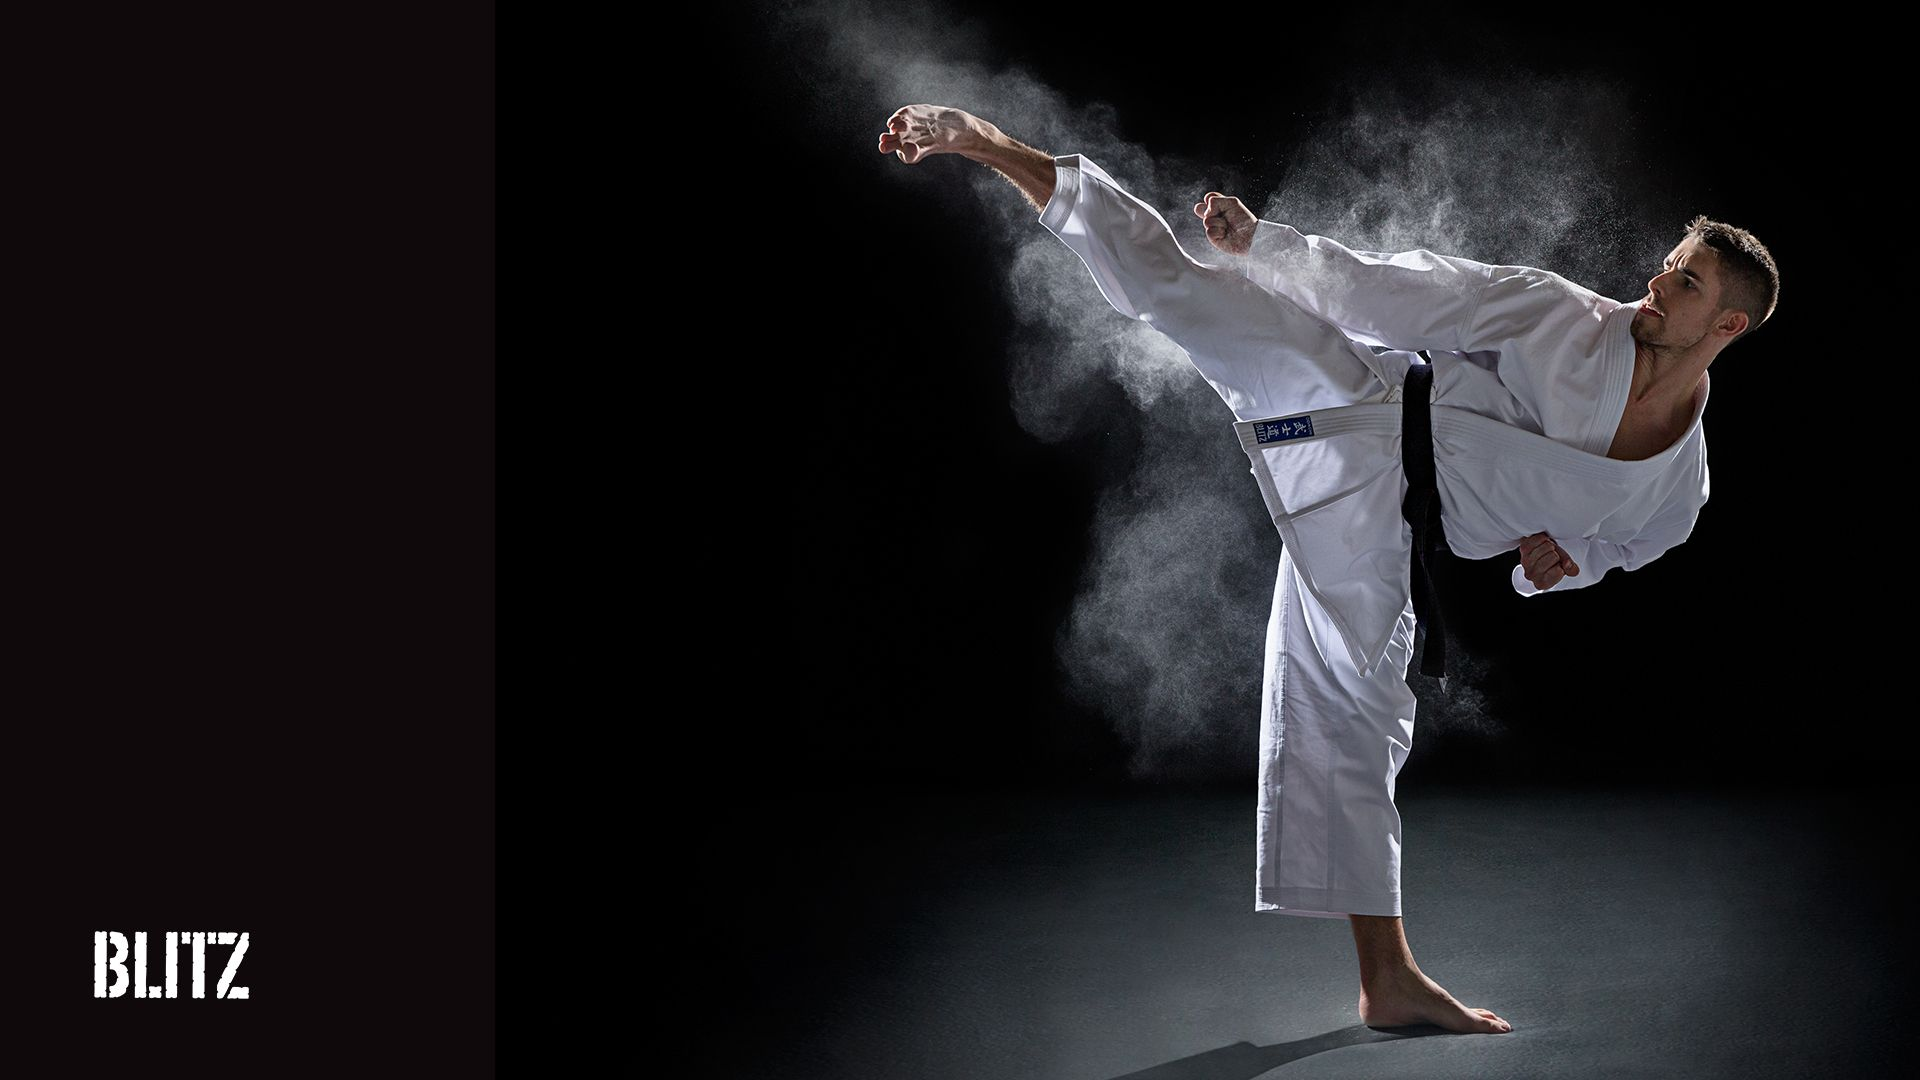 Martial Arts Hd Wallpapers Free Wallpaper Downloads Martial